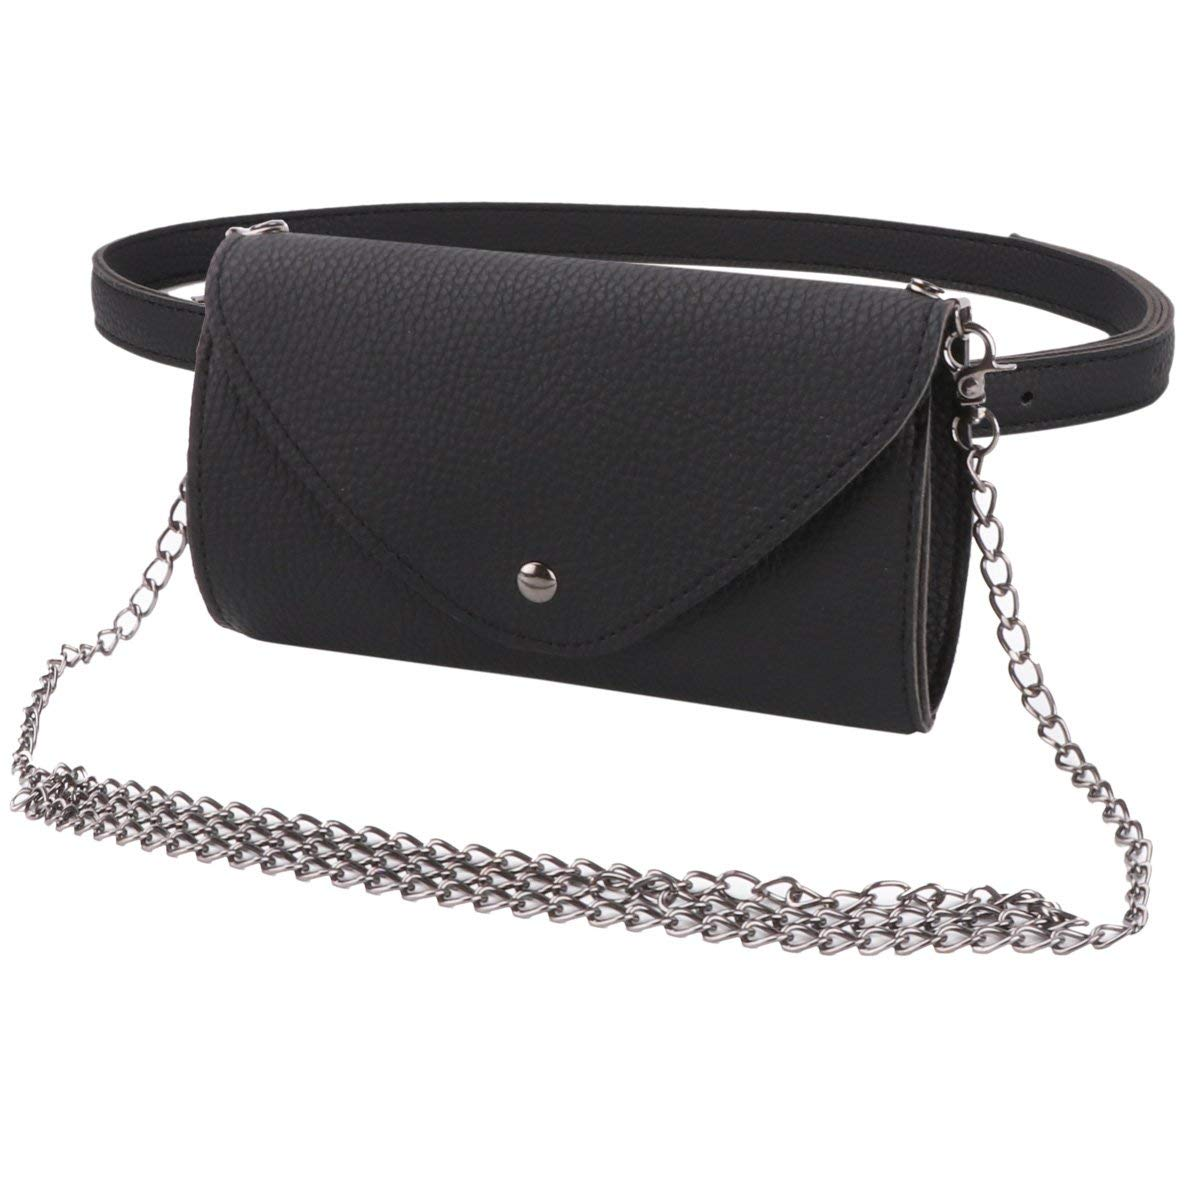 a2af5eecd169 Cheap Leather Fanny Bags, find Leather Fanny Bags deals on line at ...